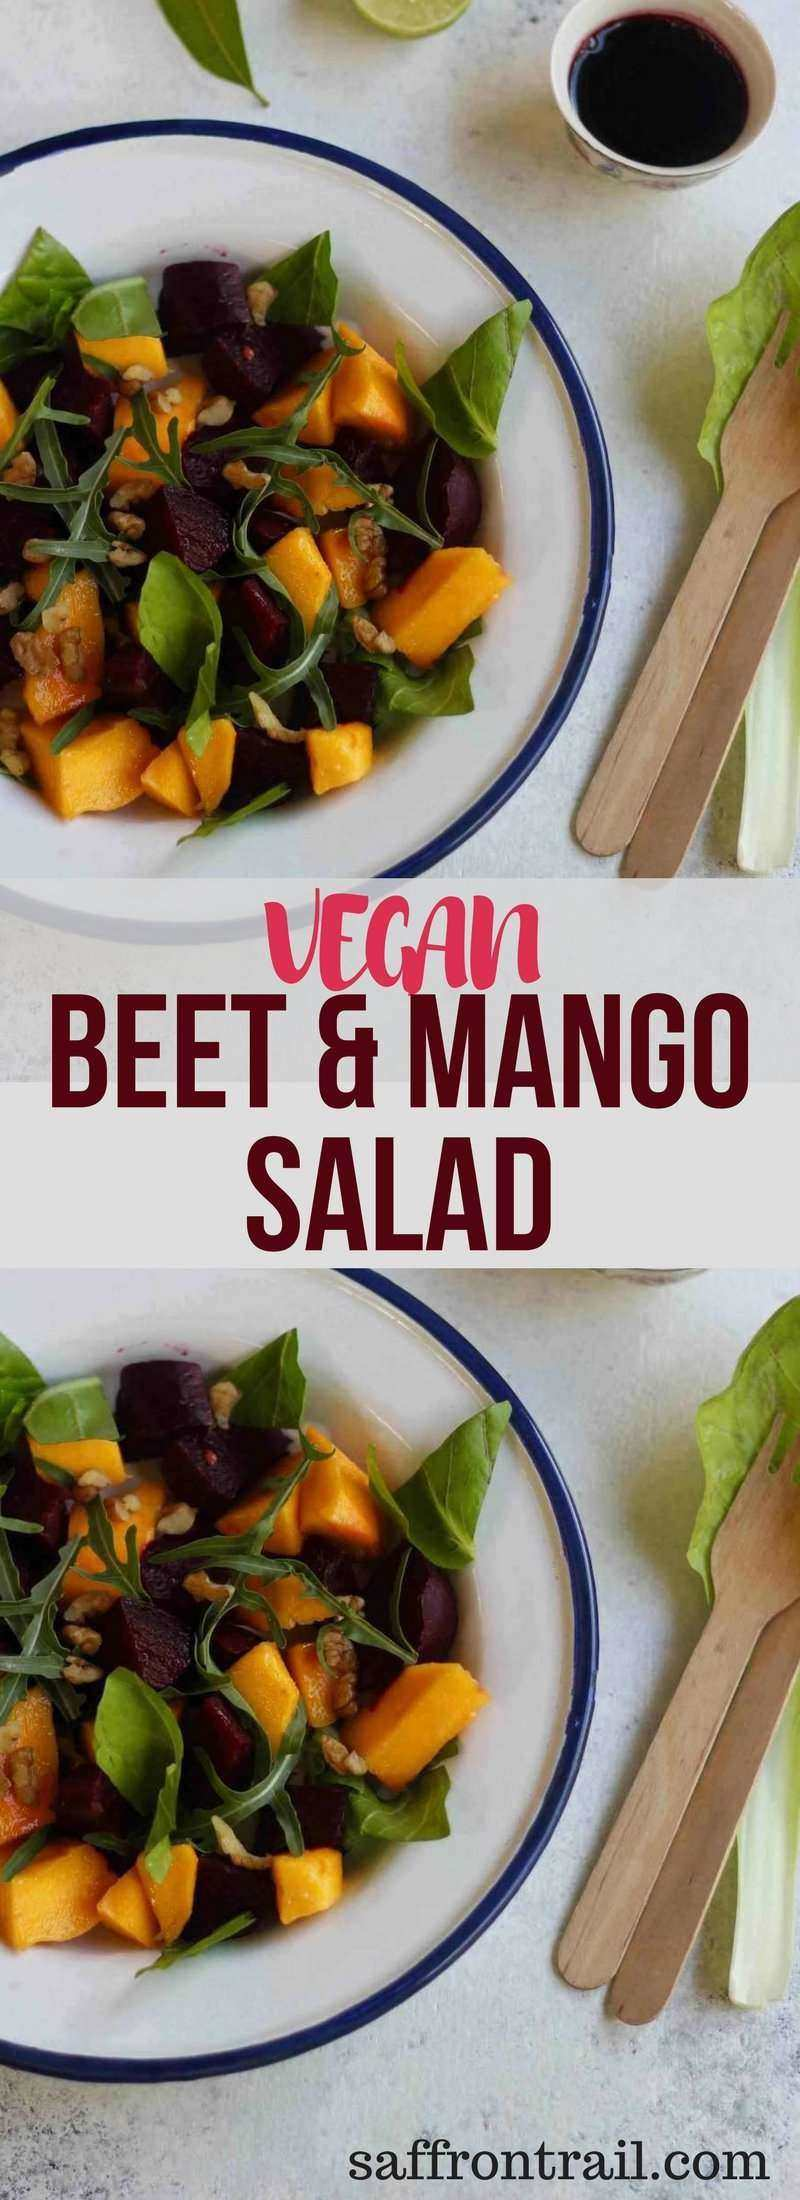 This recipe for a beet and mango salad is not just a visual feast with its contrasting colours, but also a treat for the tastebuds. The dressing is made by reducing the beet cooking liquid.